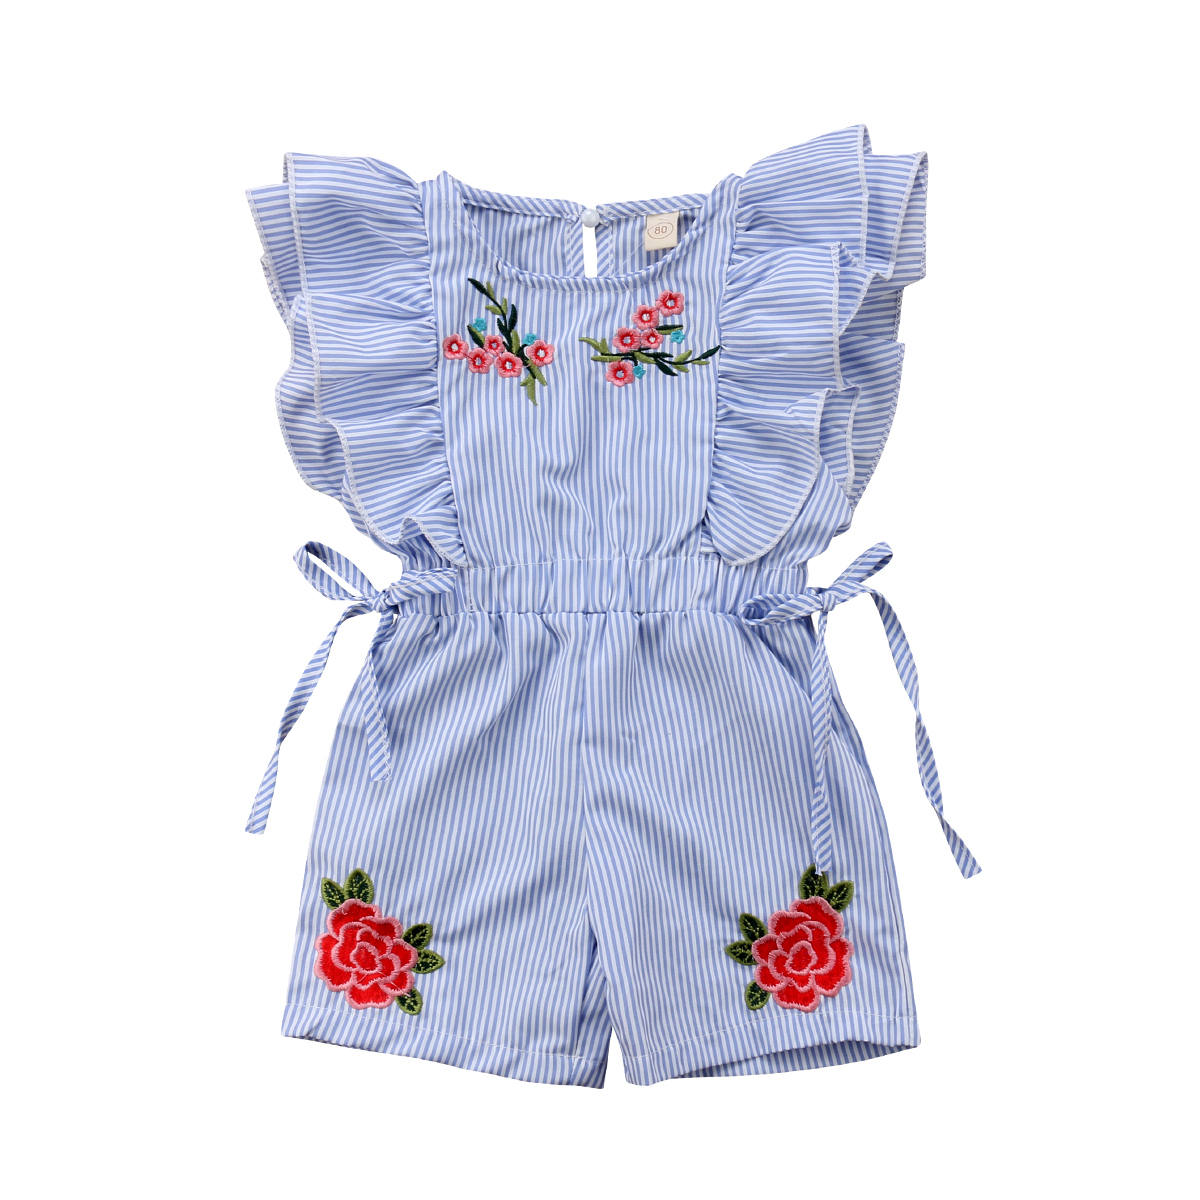 Toddler Kids Baby Girl Flower Fashion Striped Ruffle   Romper   Jumpsuit Outfits Clothes